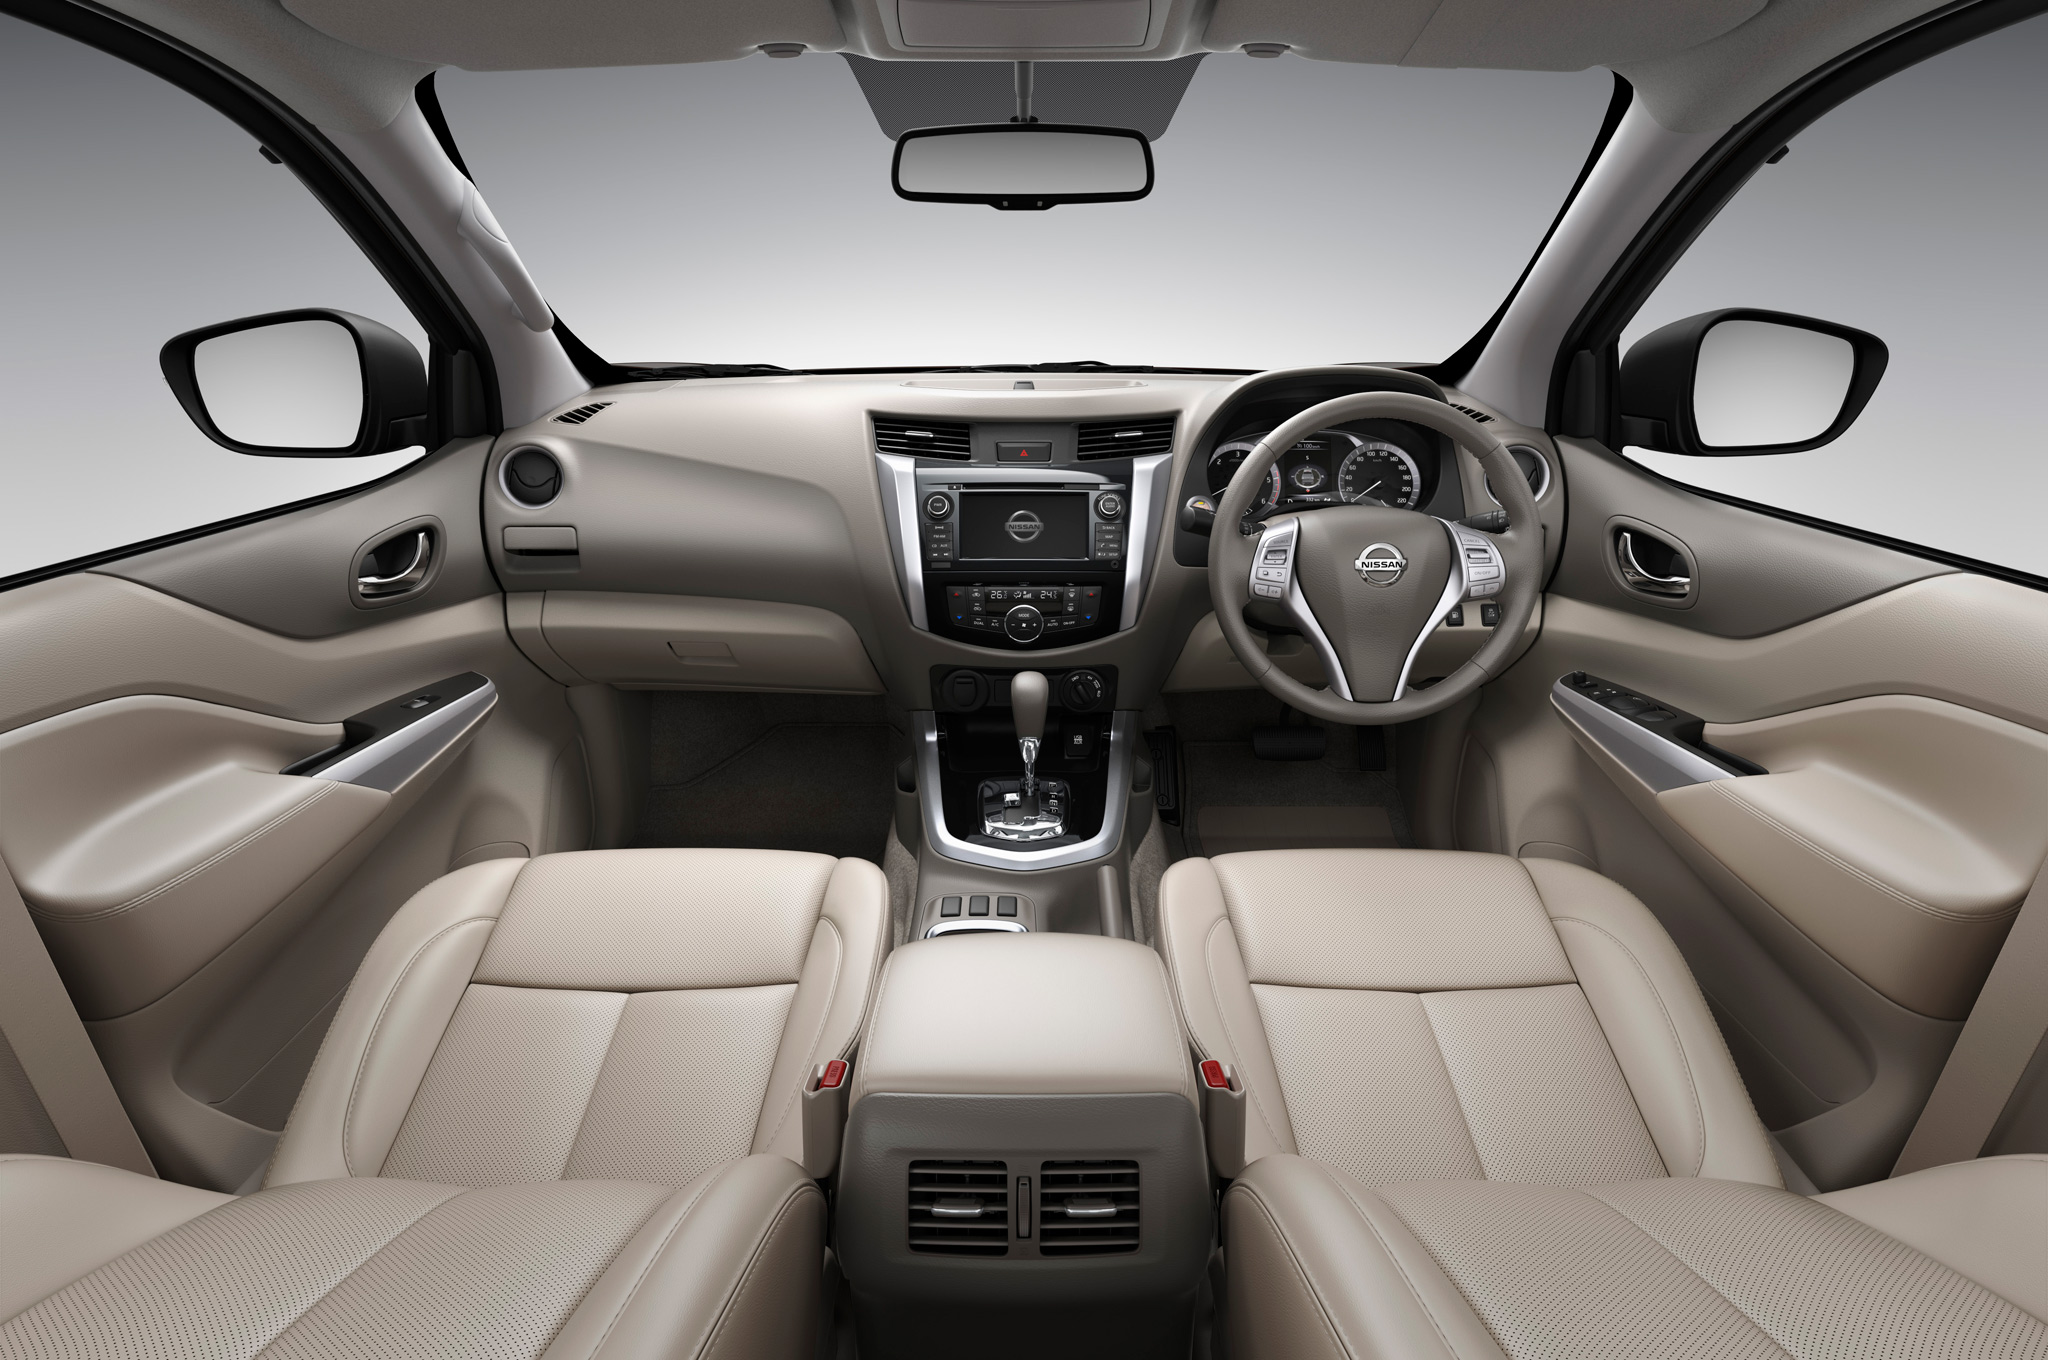 Nissan-NP300-Navara-12th-gen-interior-tan